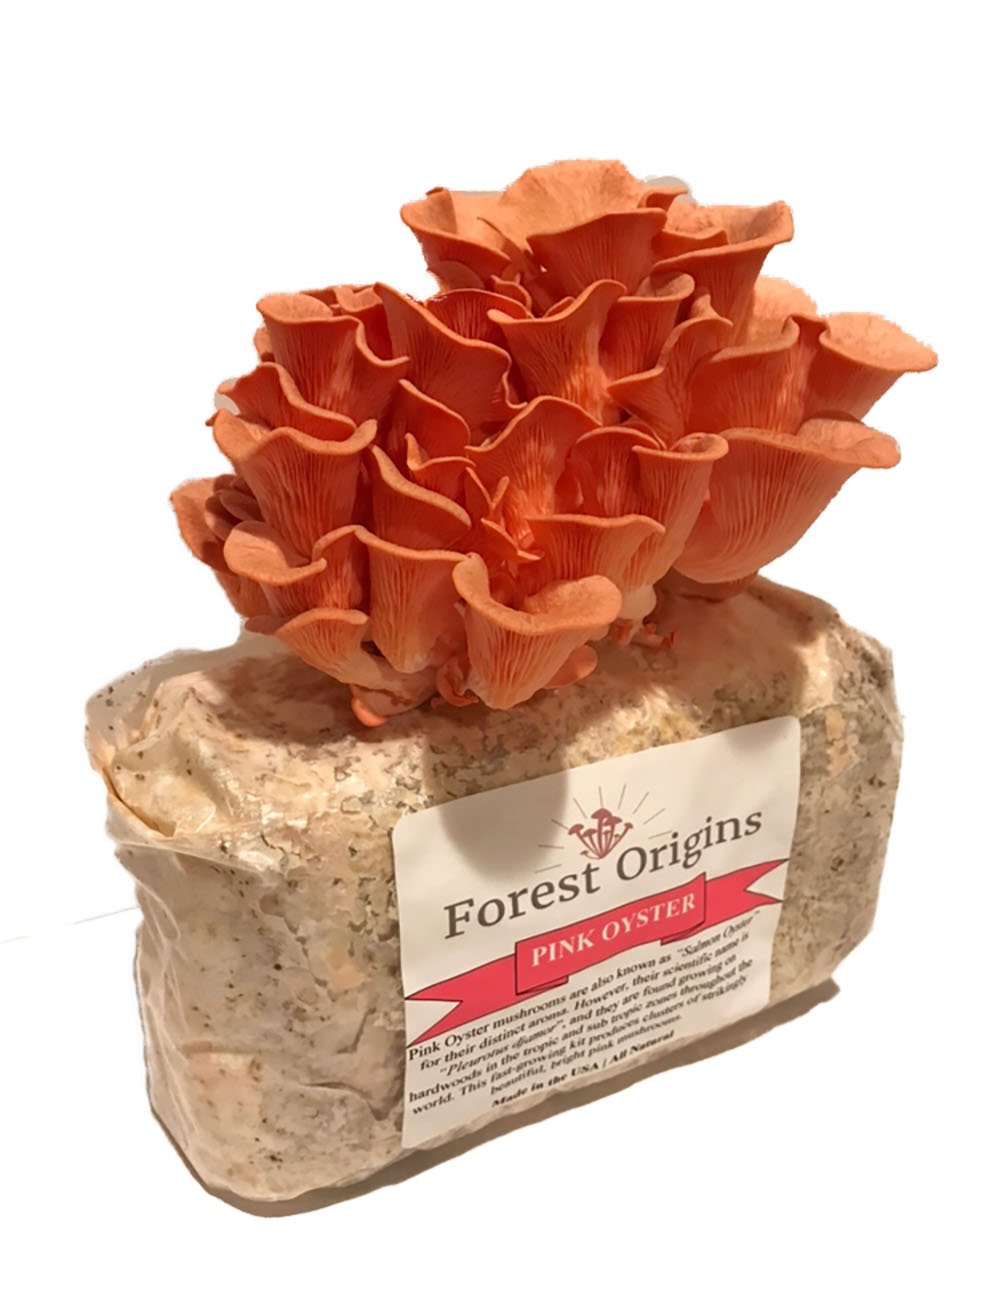 Pink Oyster Mushroom Farm - Beautiful Mushroom Growing Kit - All in One Indoor Growing Kit - Exotic Mushroom by Forest Origins